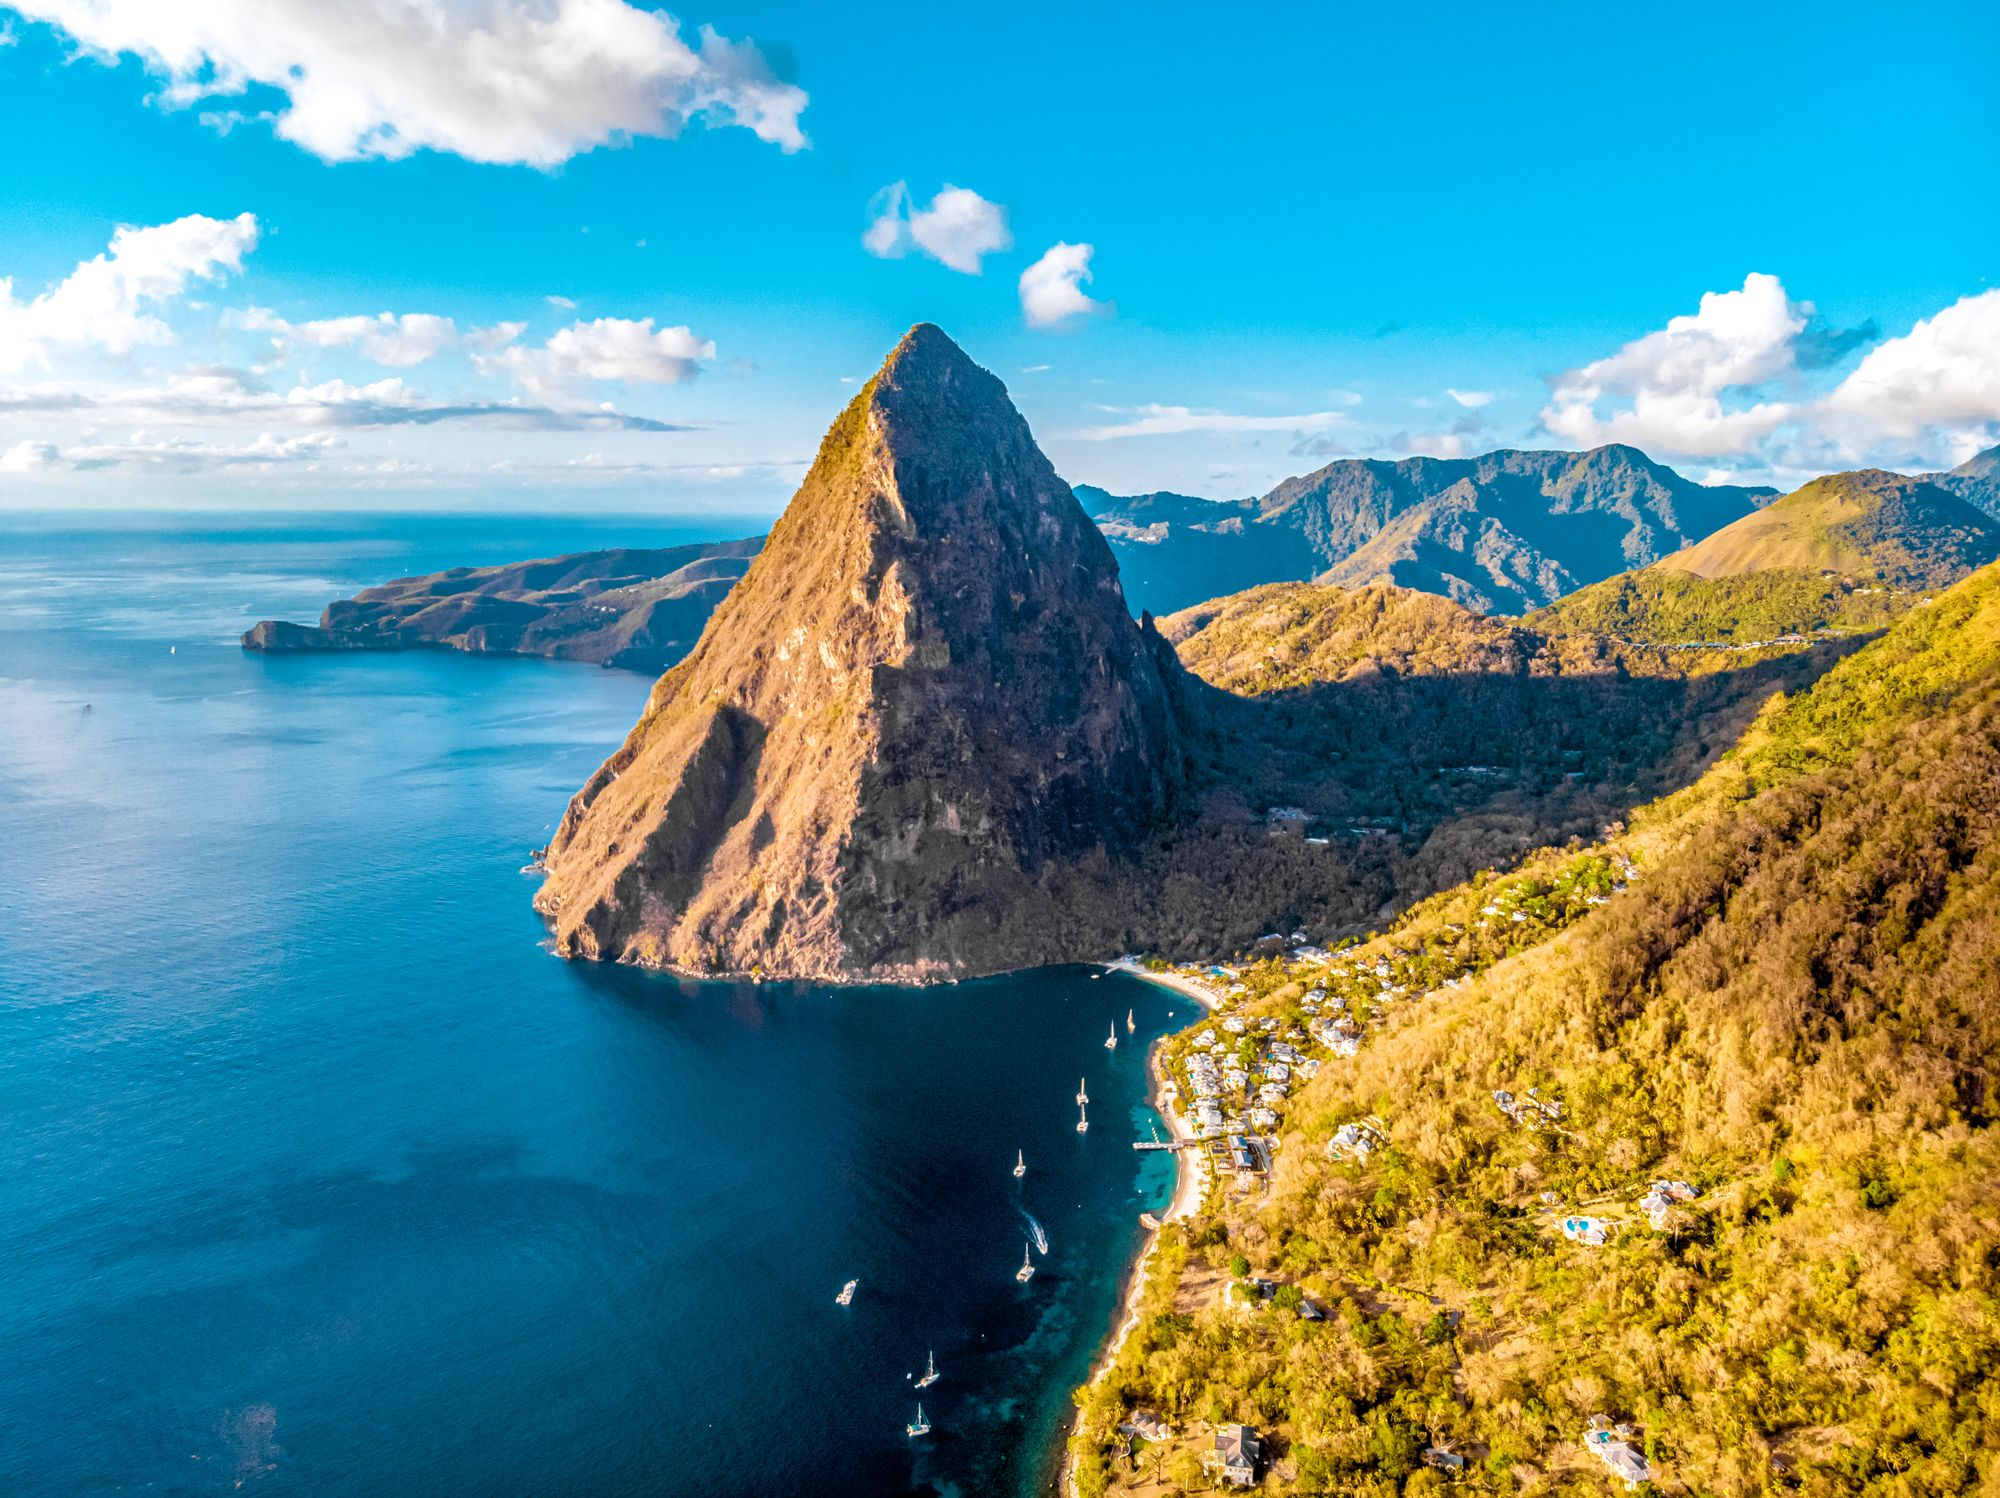 North vs South: Where To Stay In Saint Lucia?